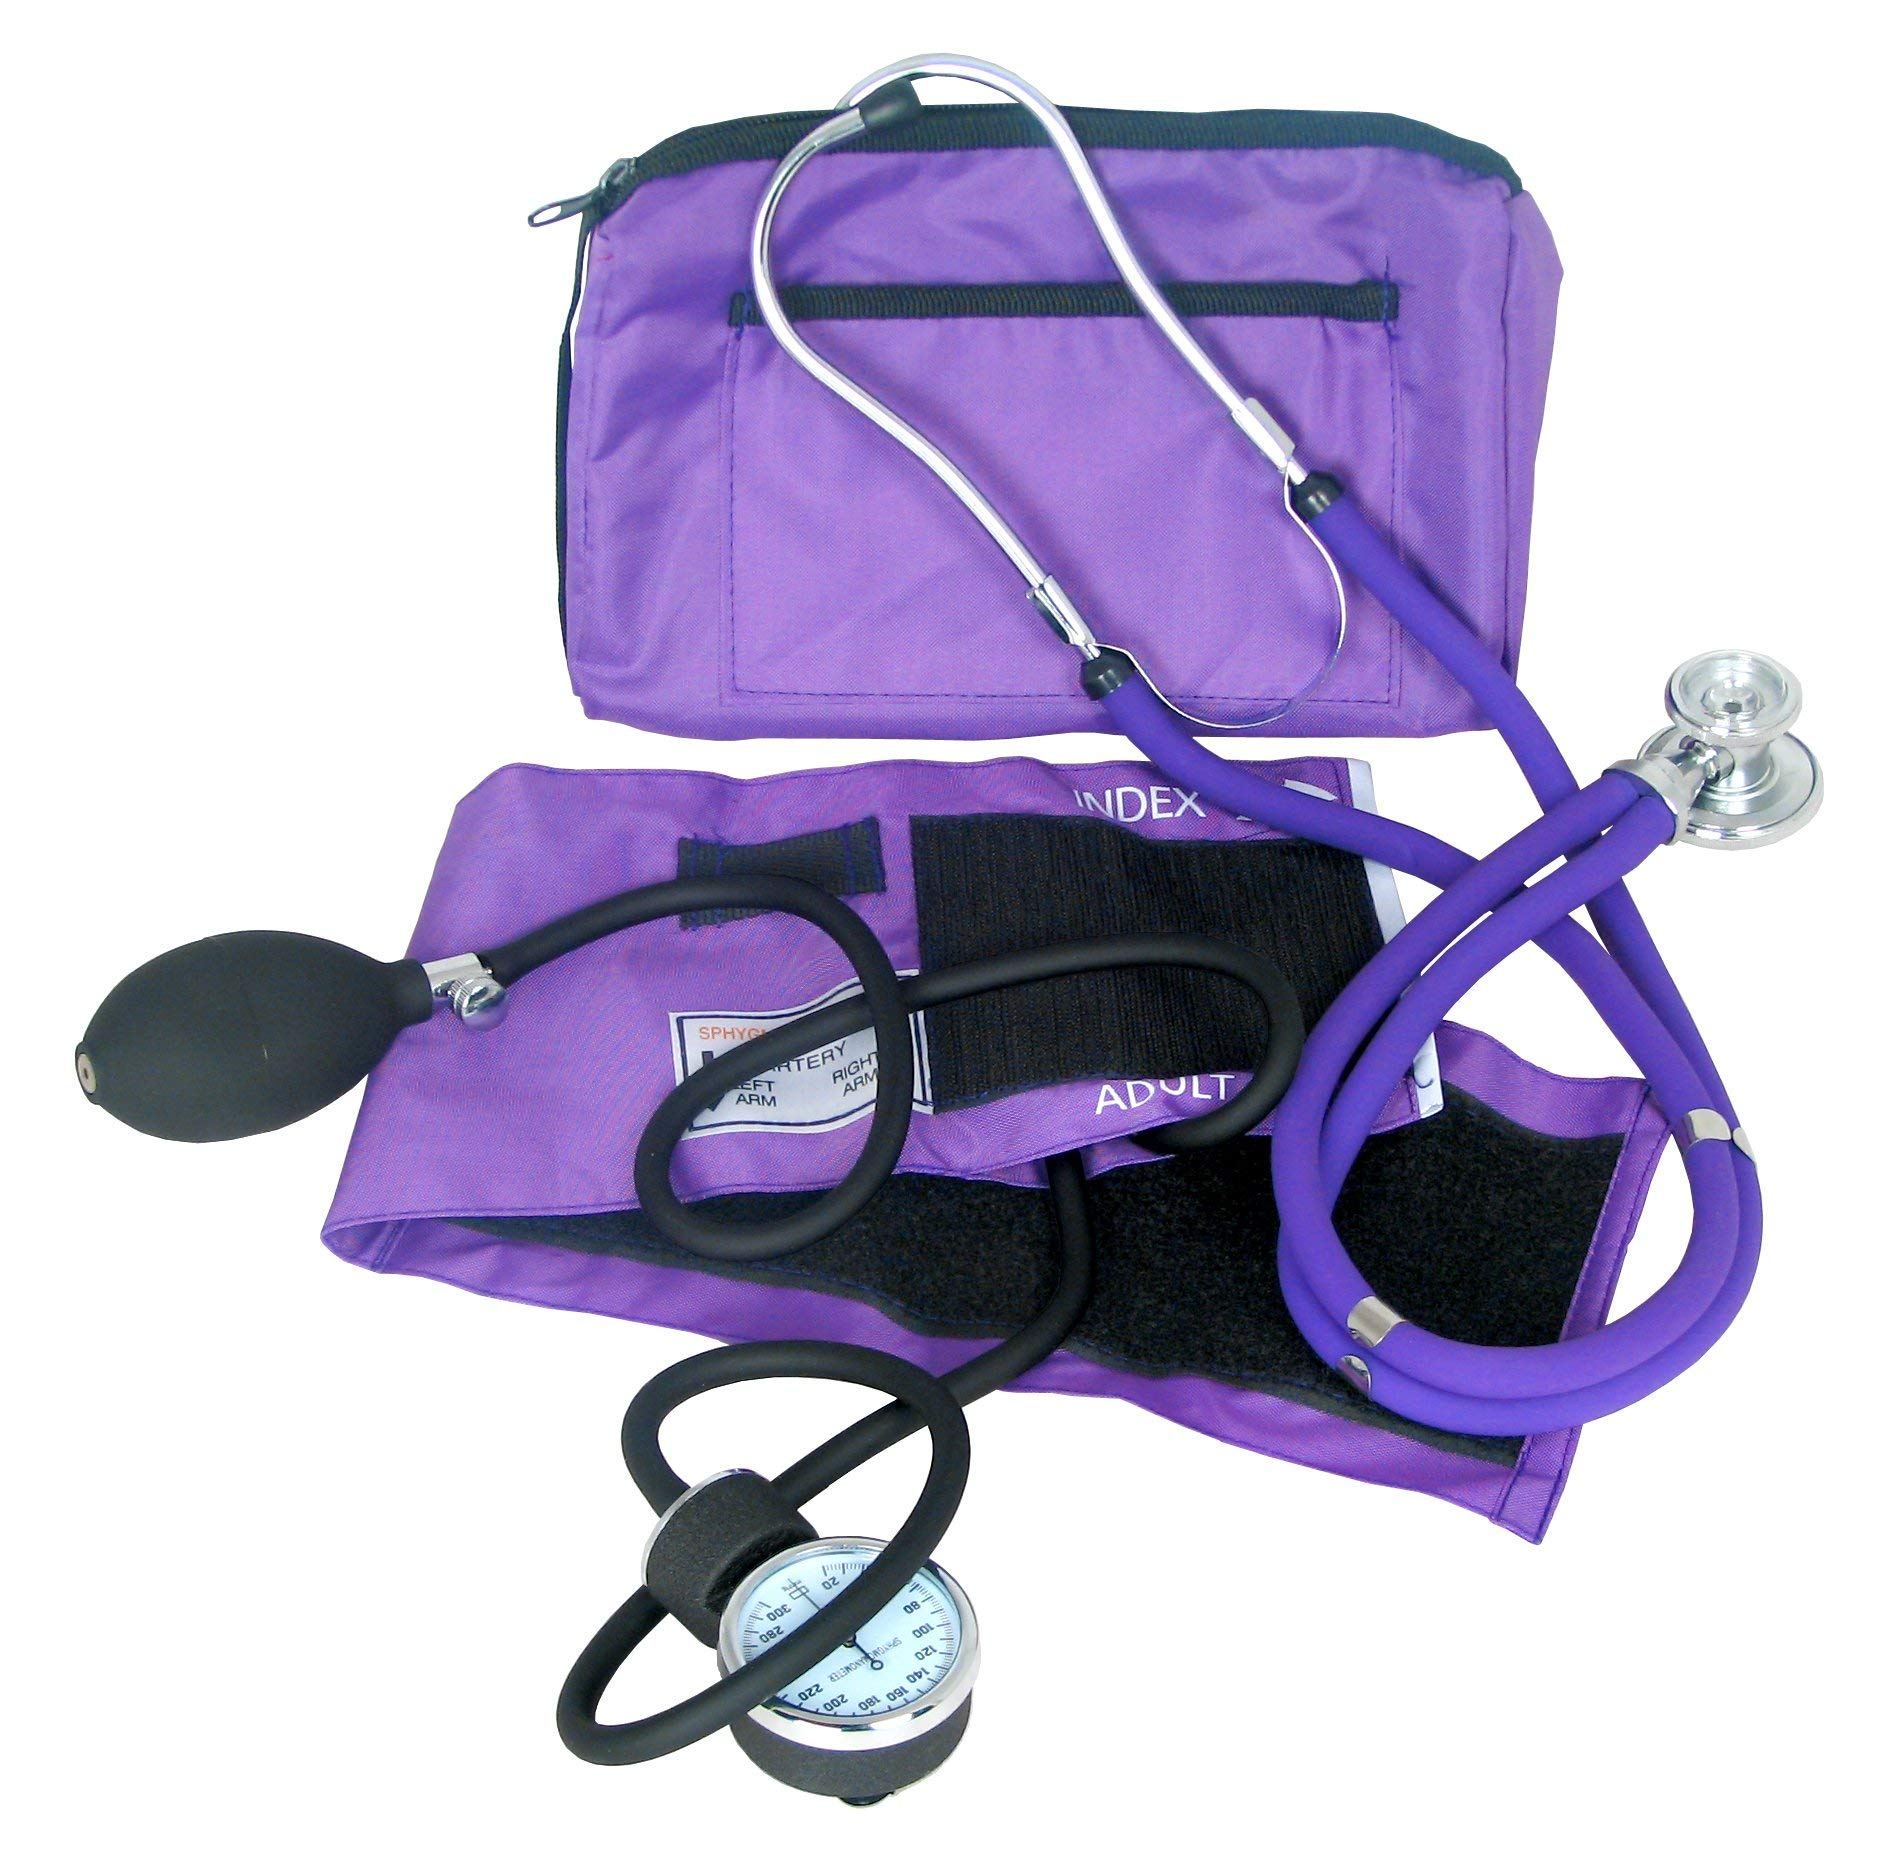 Dixie Ems Purple Blood Pressure and Sprague Stethoscope Kit by Dixie Ems